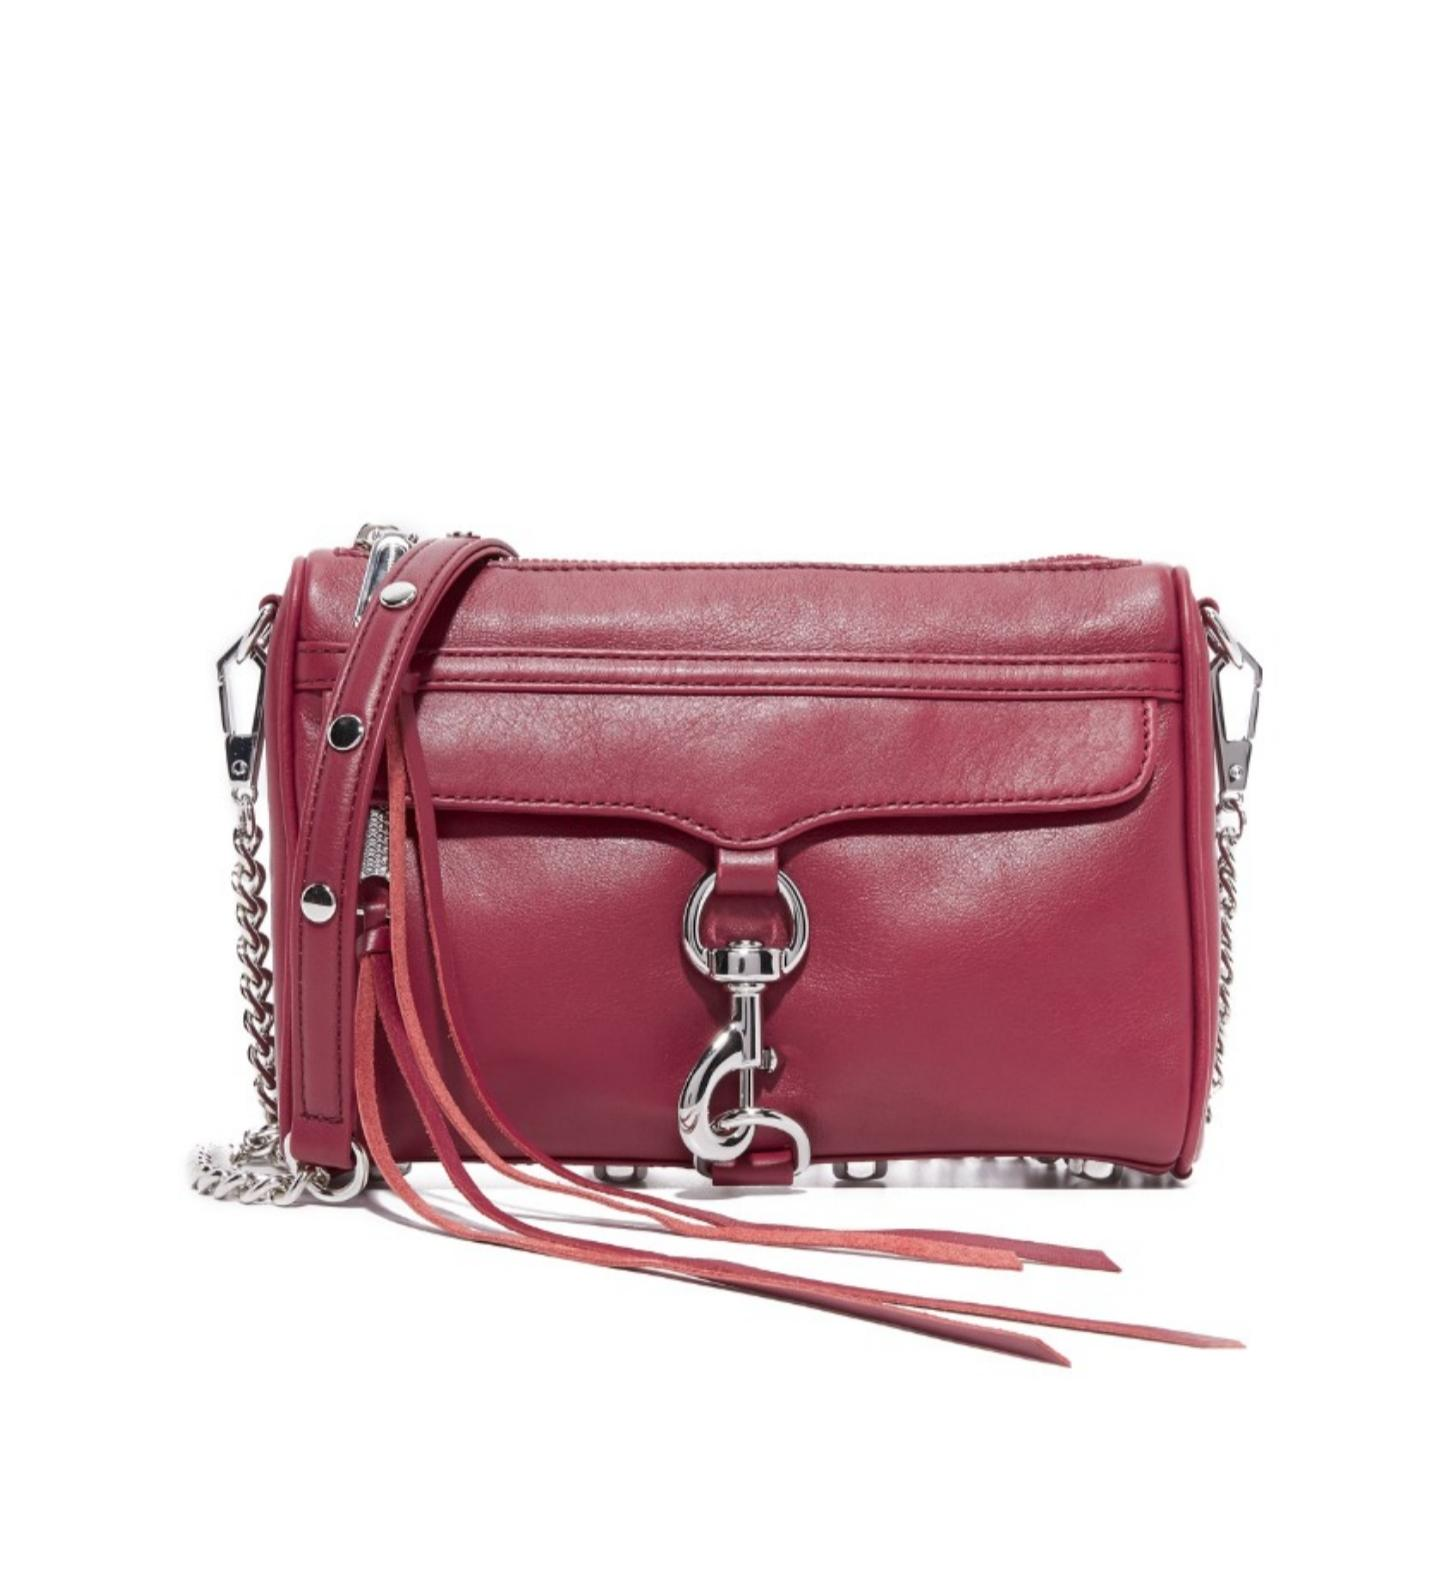 Shop the Rebecca Minkoff Sale for Handbags, Travel Bags, Backpacks & more discounted Rebecca Minkoff top styles on sale from the latest collections.